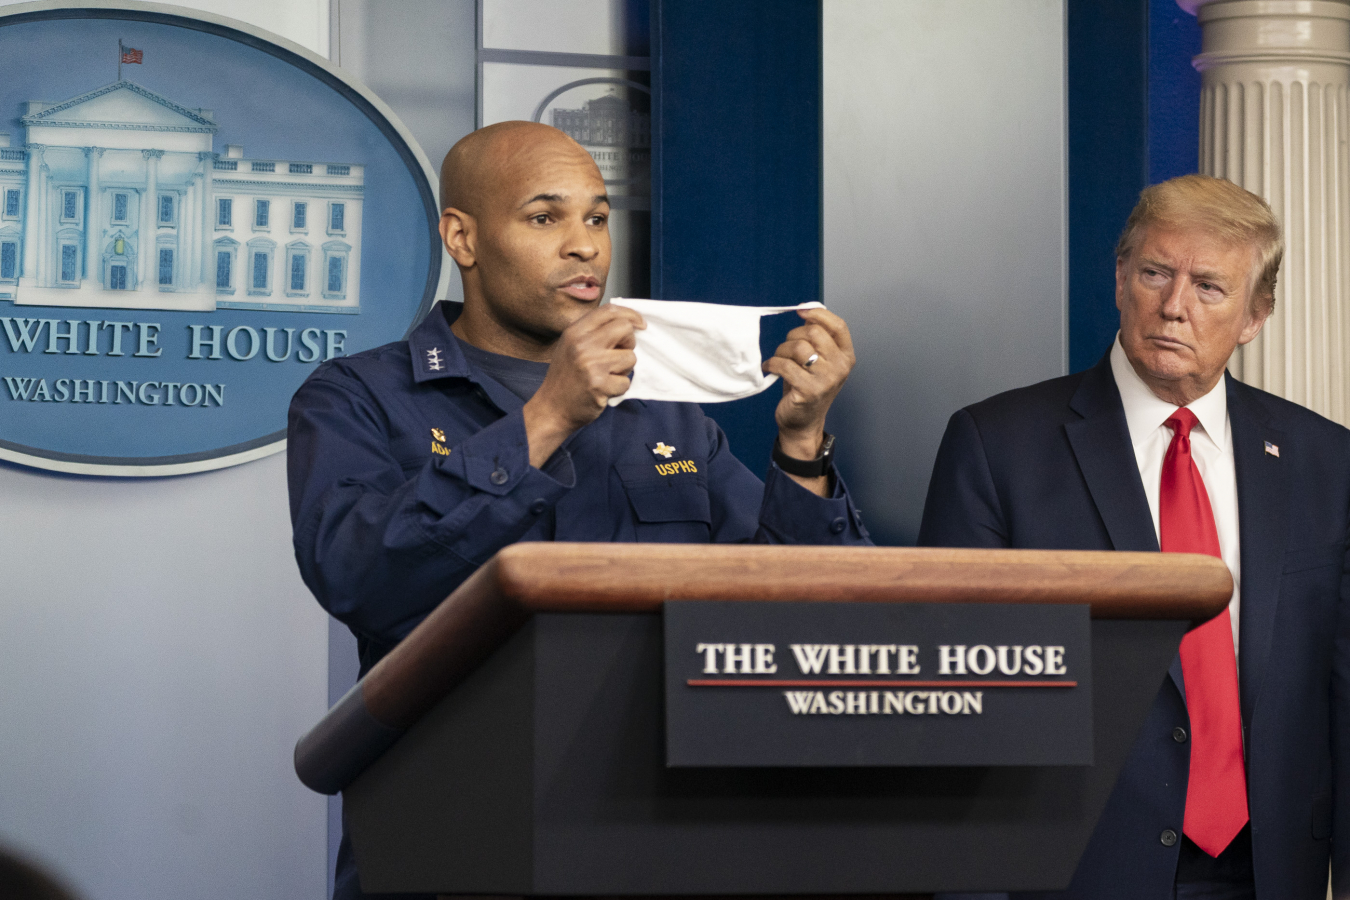 Donald J. Trump listens as U.S. Surgeon General Jerome Adams delivers remarks and urges citizens to wear masks in public at the coronavirus (COVID-19) update briefing Wednesday, April 22, 2020